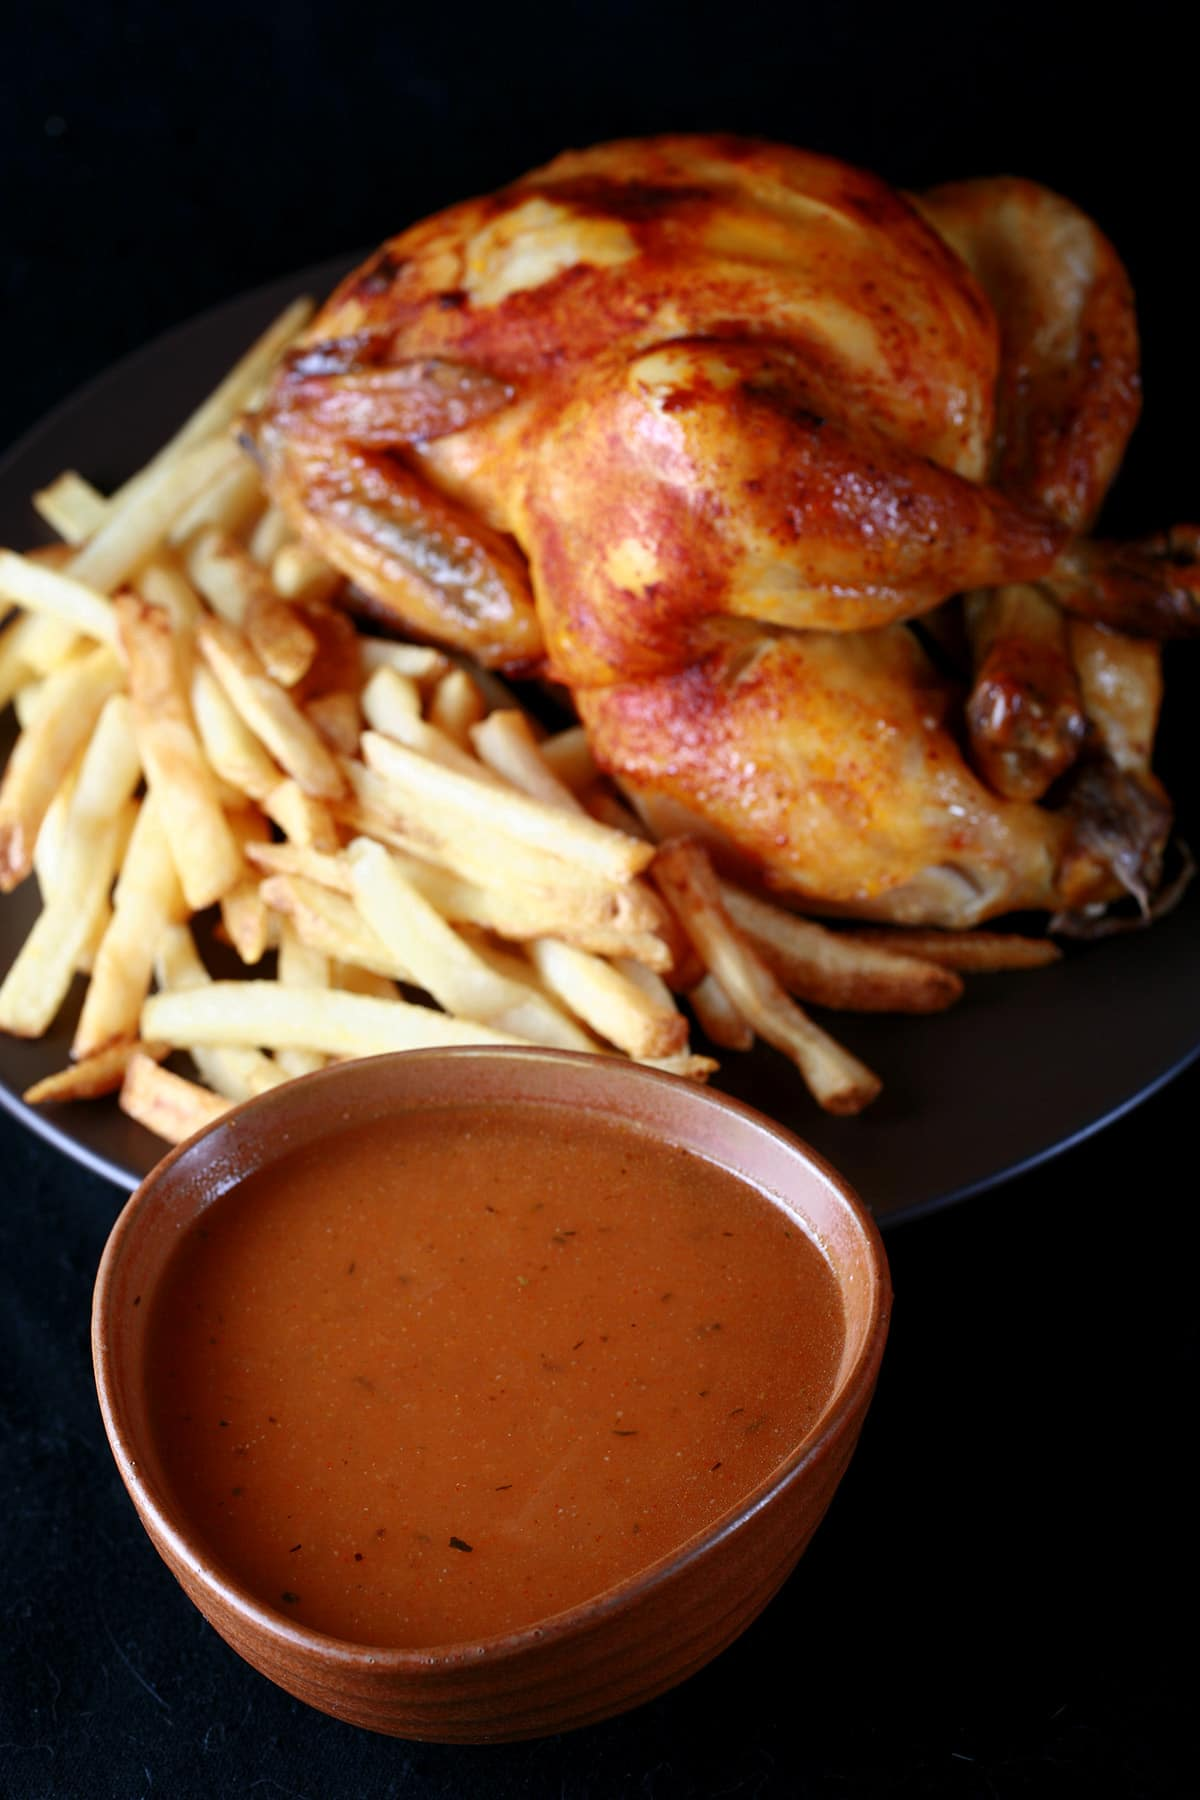 A large bowl of copycat Swiss Chalet Sauce next to a roasted chicken and fries.